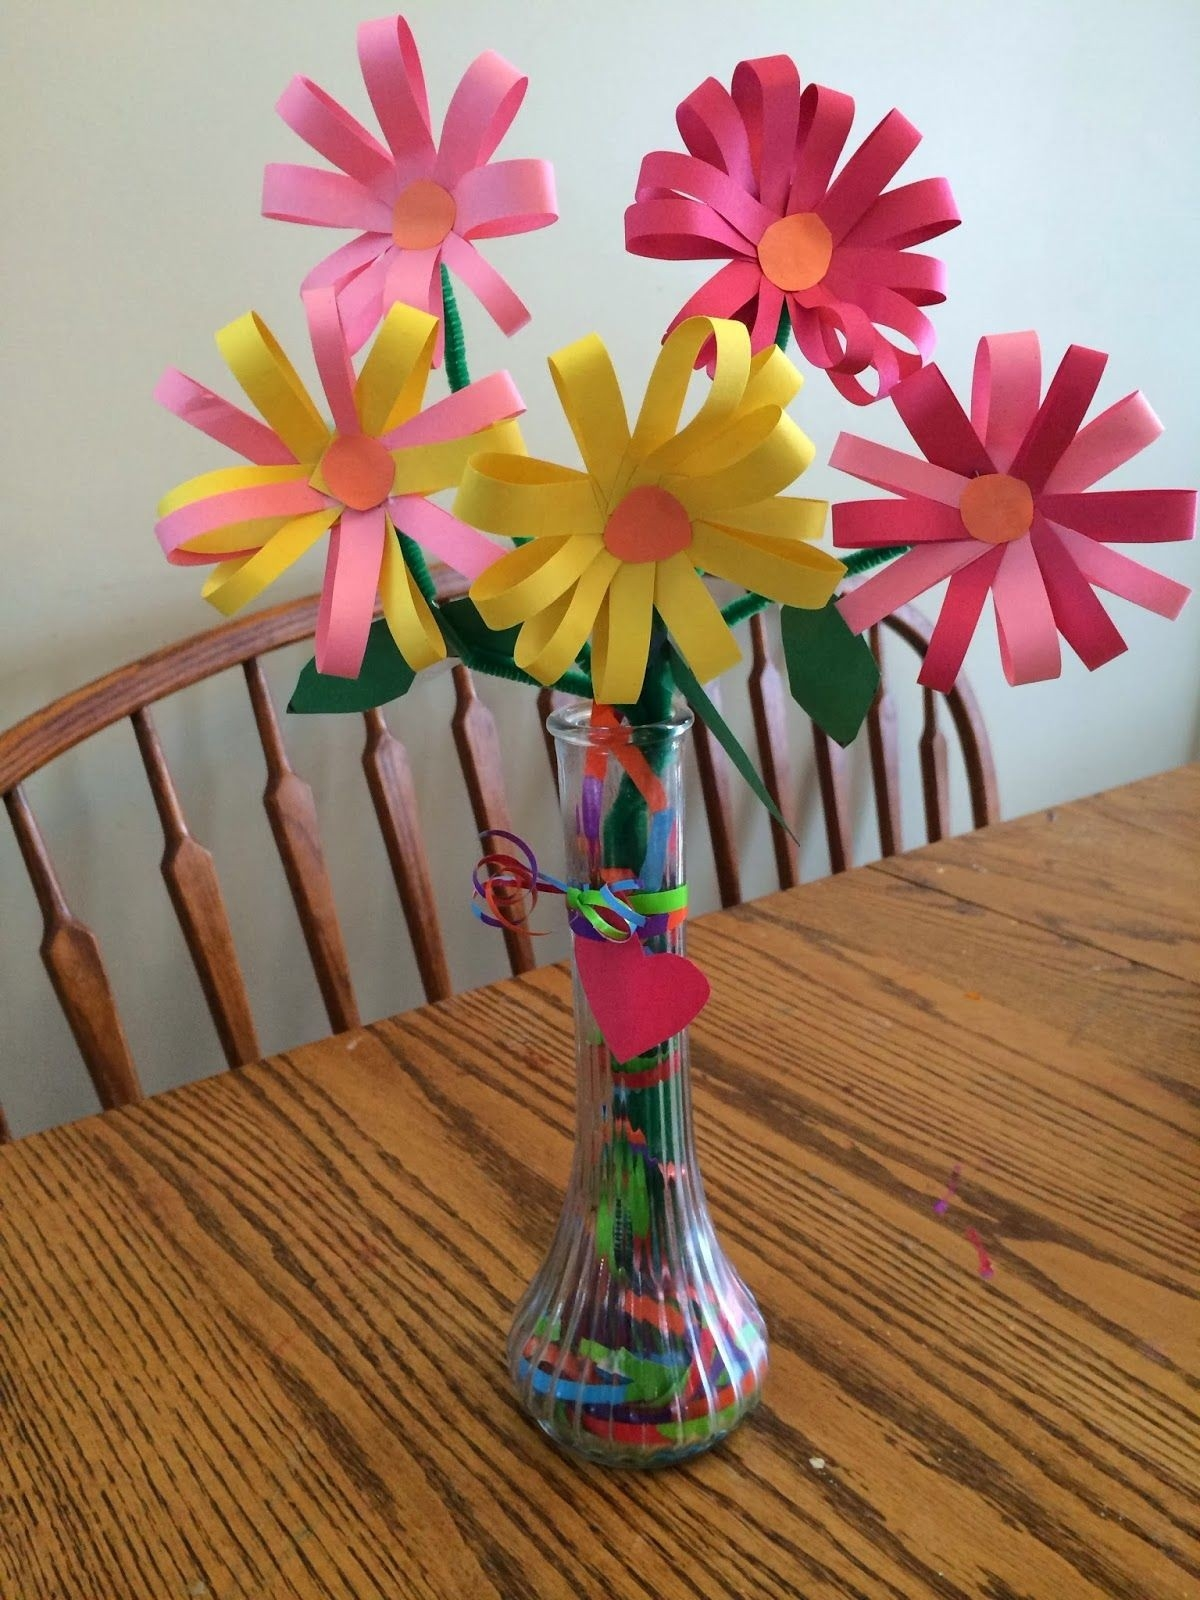 Construction Paper Flowers. Vase Filled With Gift-Wrap Ribbon intended for Construction Paper Flowers 28616